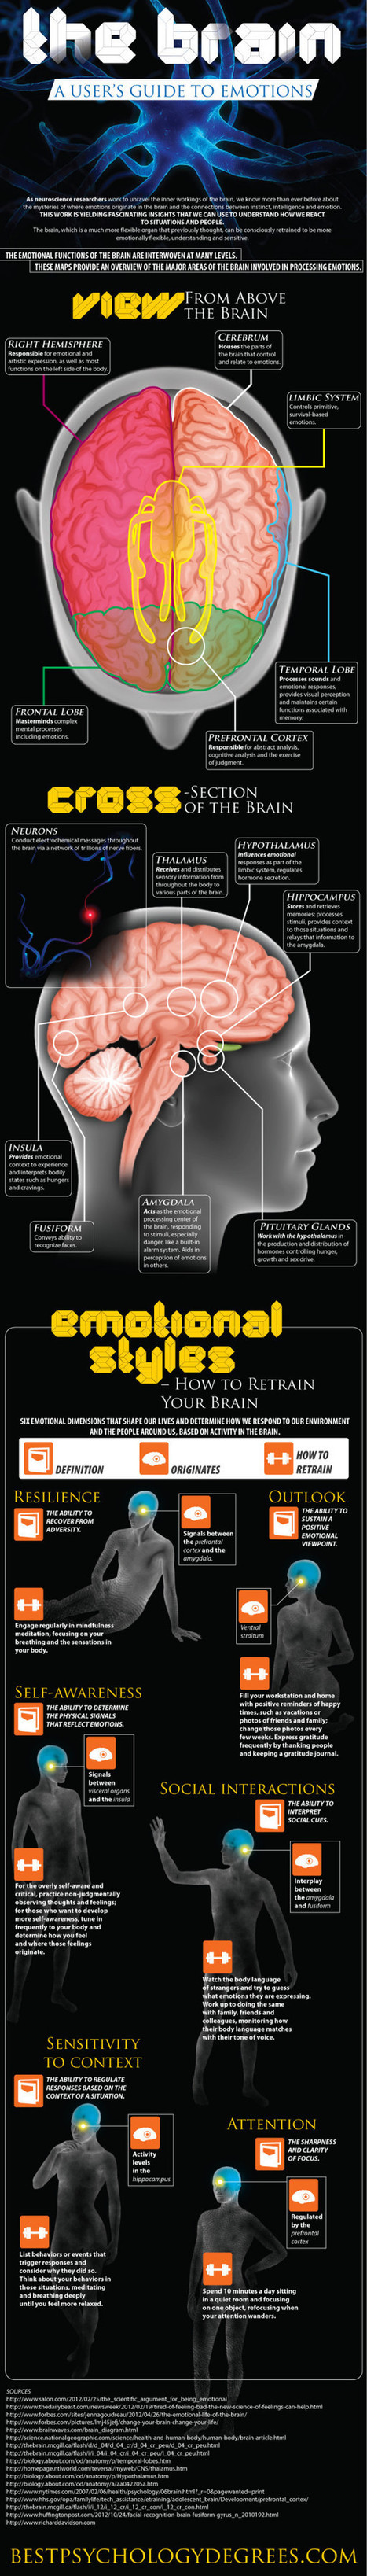 Anger Management 101 And The Brain Guide To Emotions [Infographic] | Psychology Daily | Scoop.it